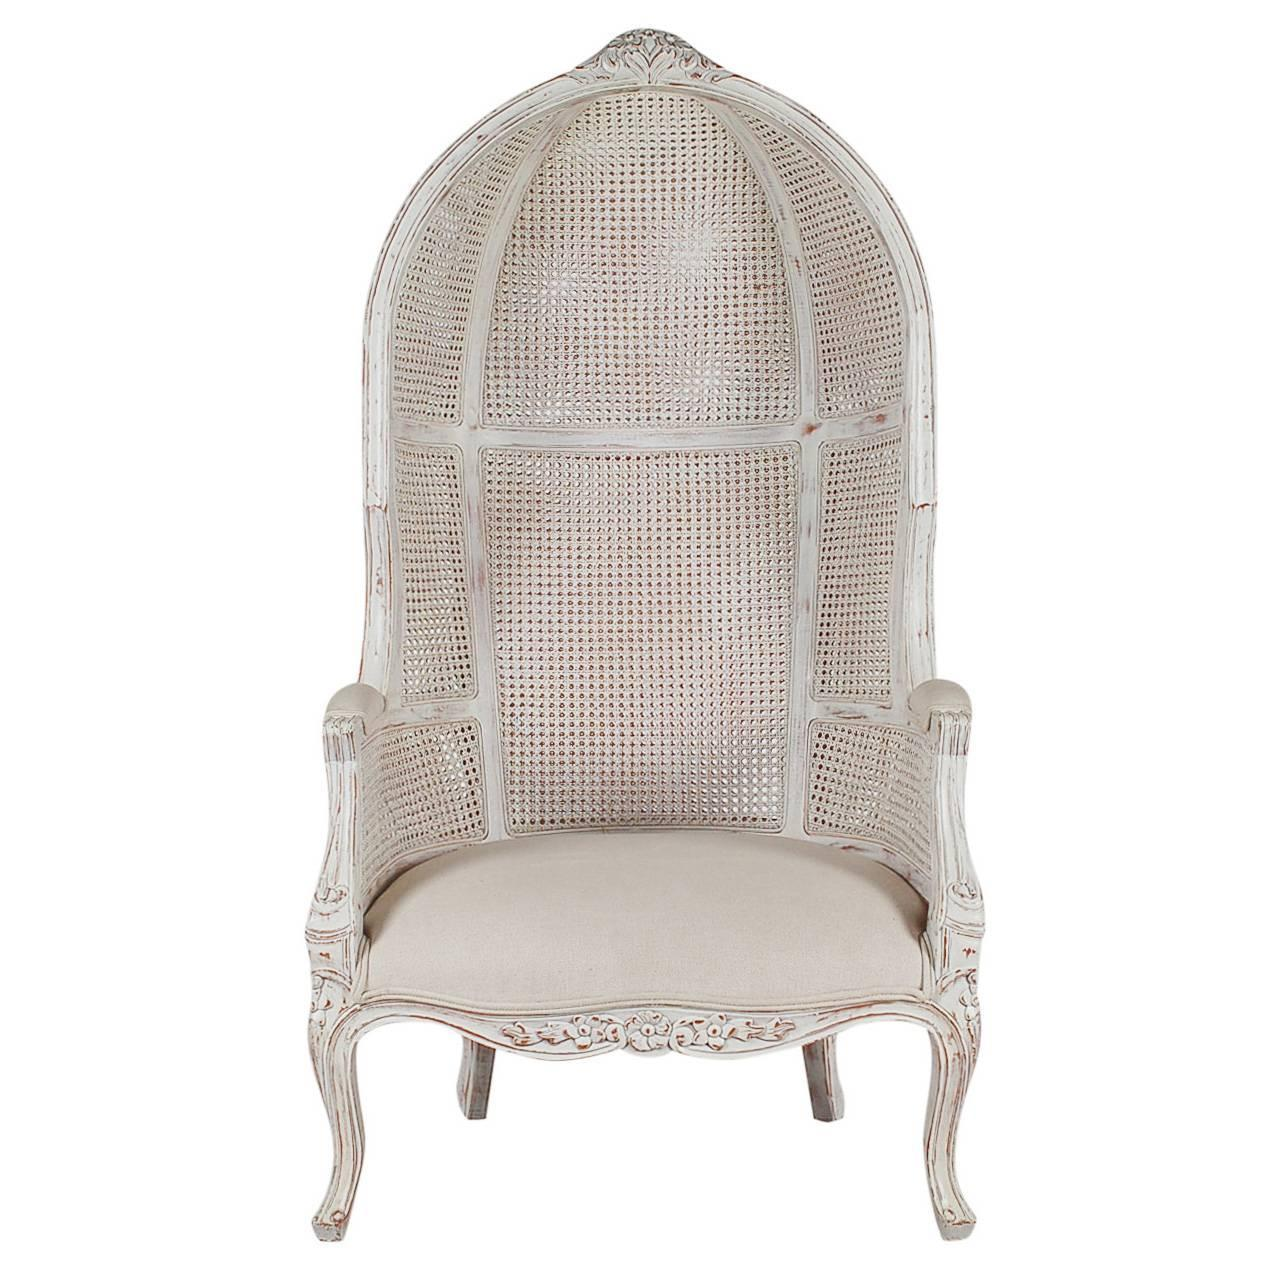 Swell French Style Cane Wingback Canopy Porters Chair At 1Stdibs Cjindustries Chair Design For Home Cjindustriesco